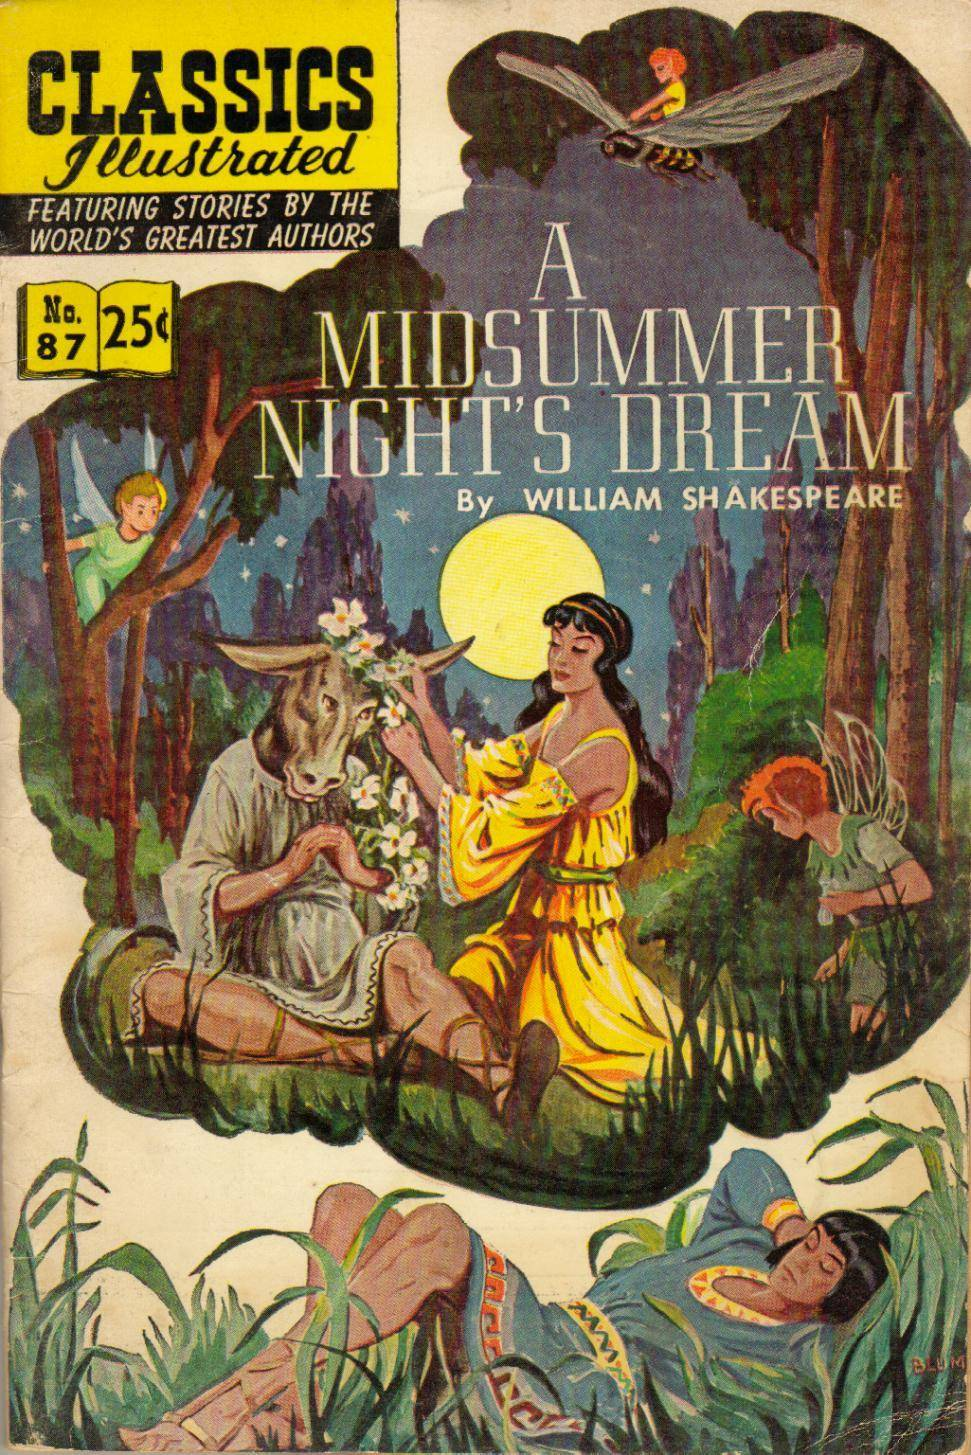 For Spectre99 - Classics Illustrated 087 A Midsummer Nights Dream William Shakespeare cbr